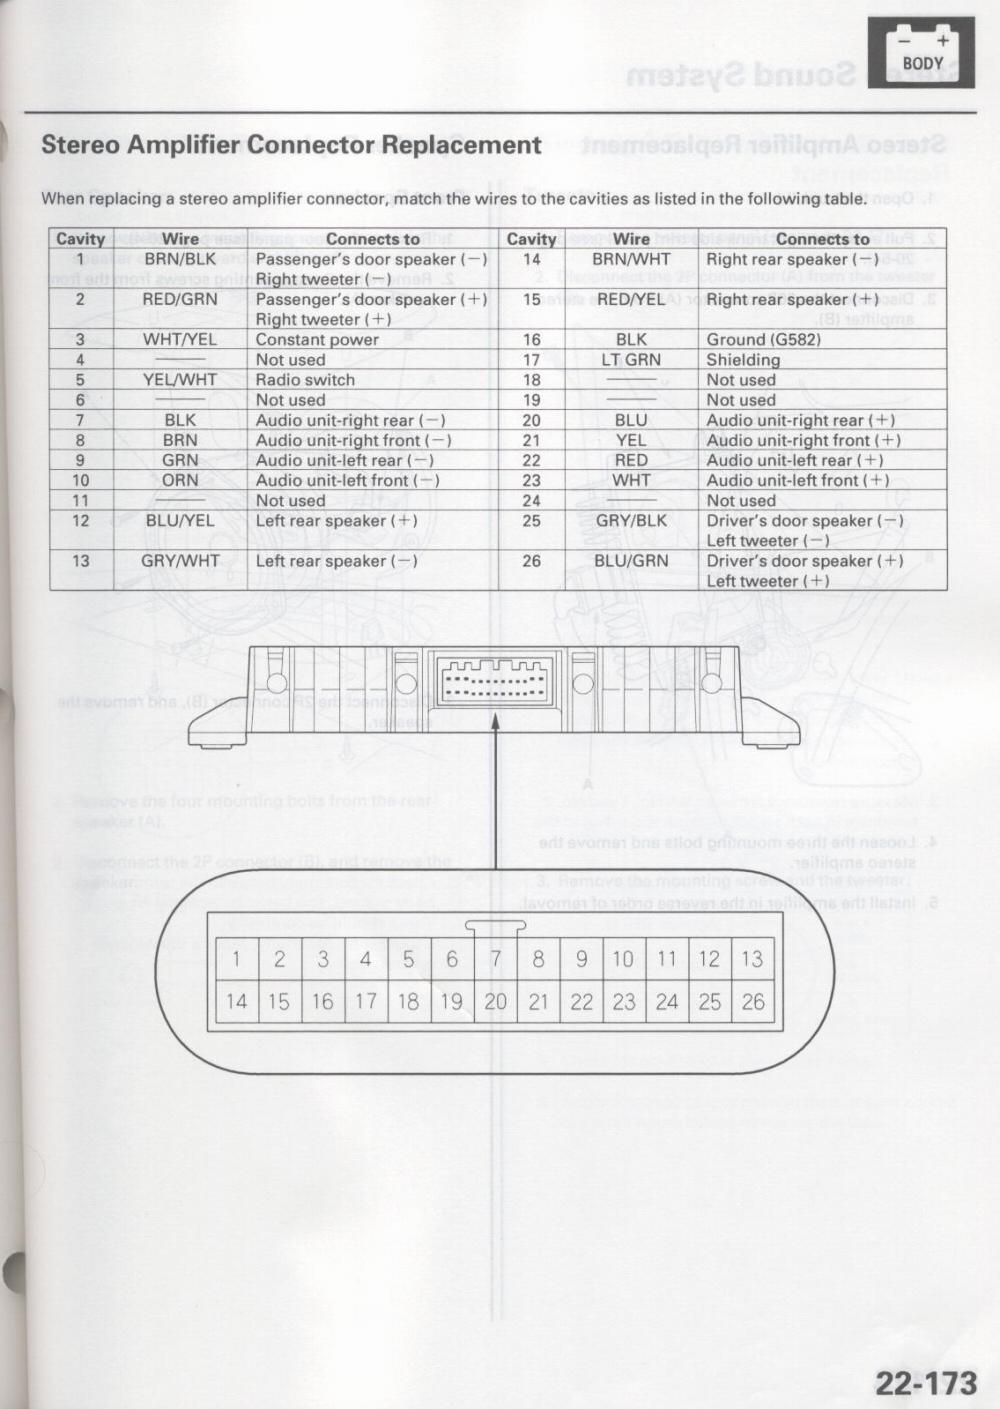 Acura 2002 TL car stereo amplifier wiring diagram harness car radio stereo audio wiring diagram autoradio connector wire  at reclaimingppi.co